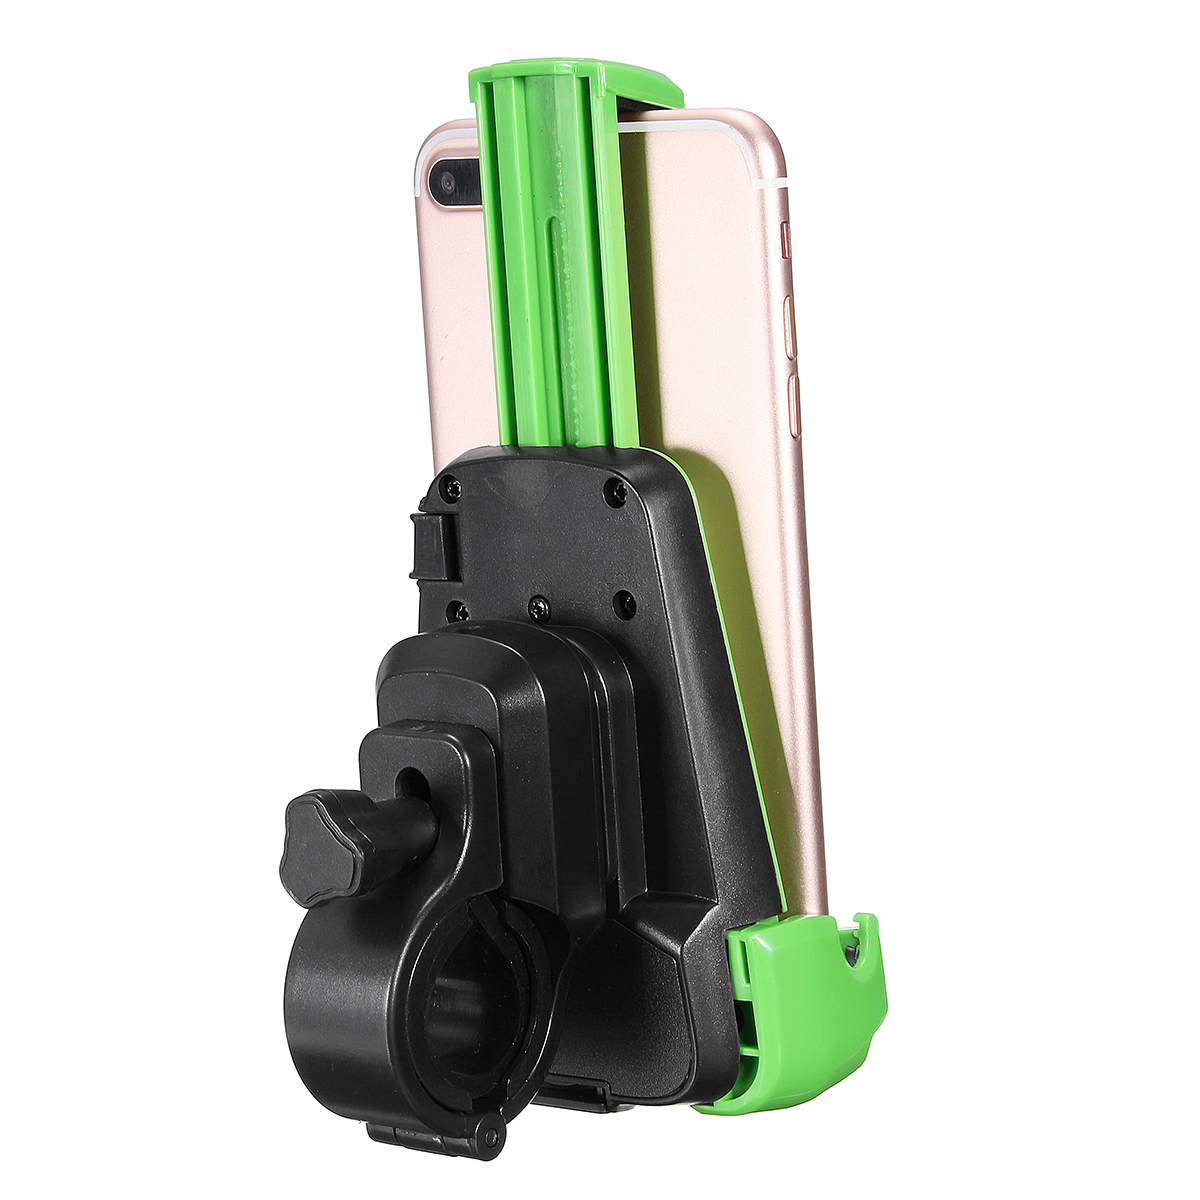 Hot Universal Racing Motorcycle Bike Bicycle Handlebar Holder Mount For Mobile Phone GPS